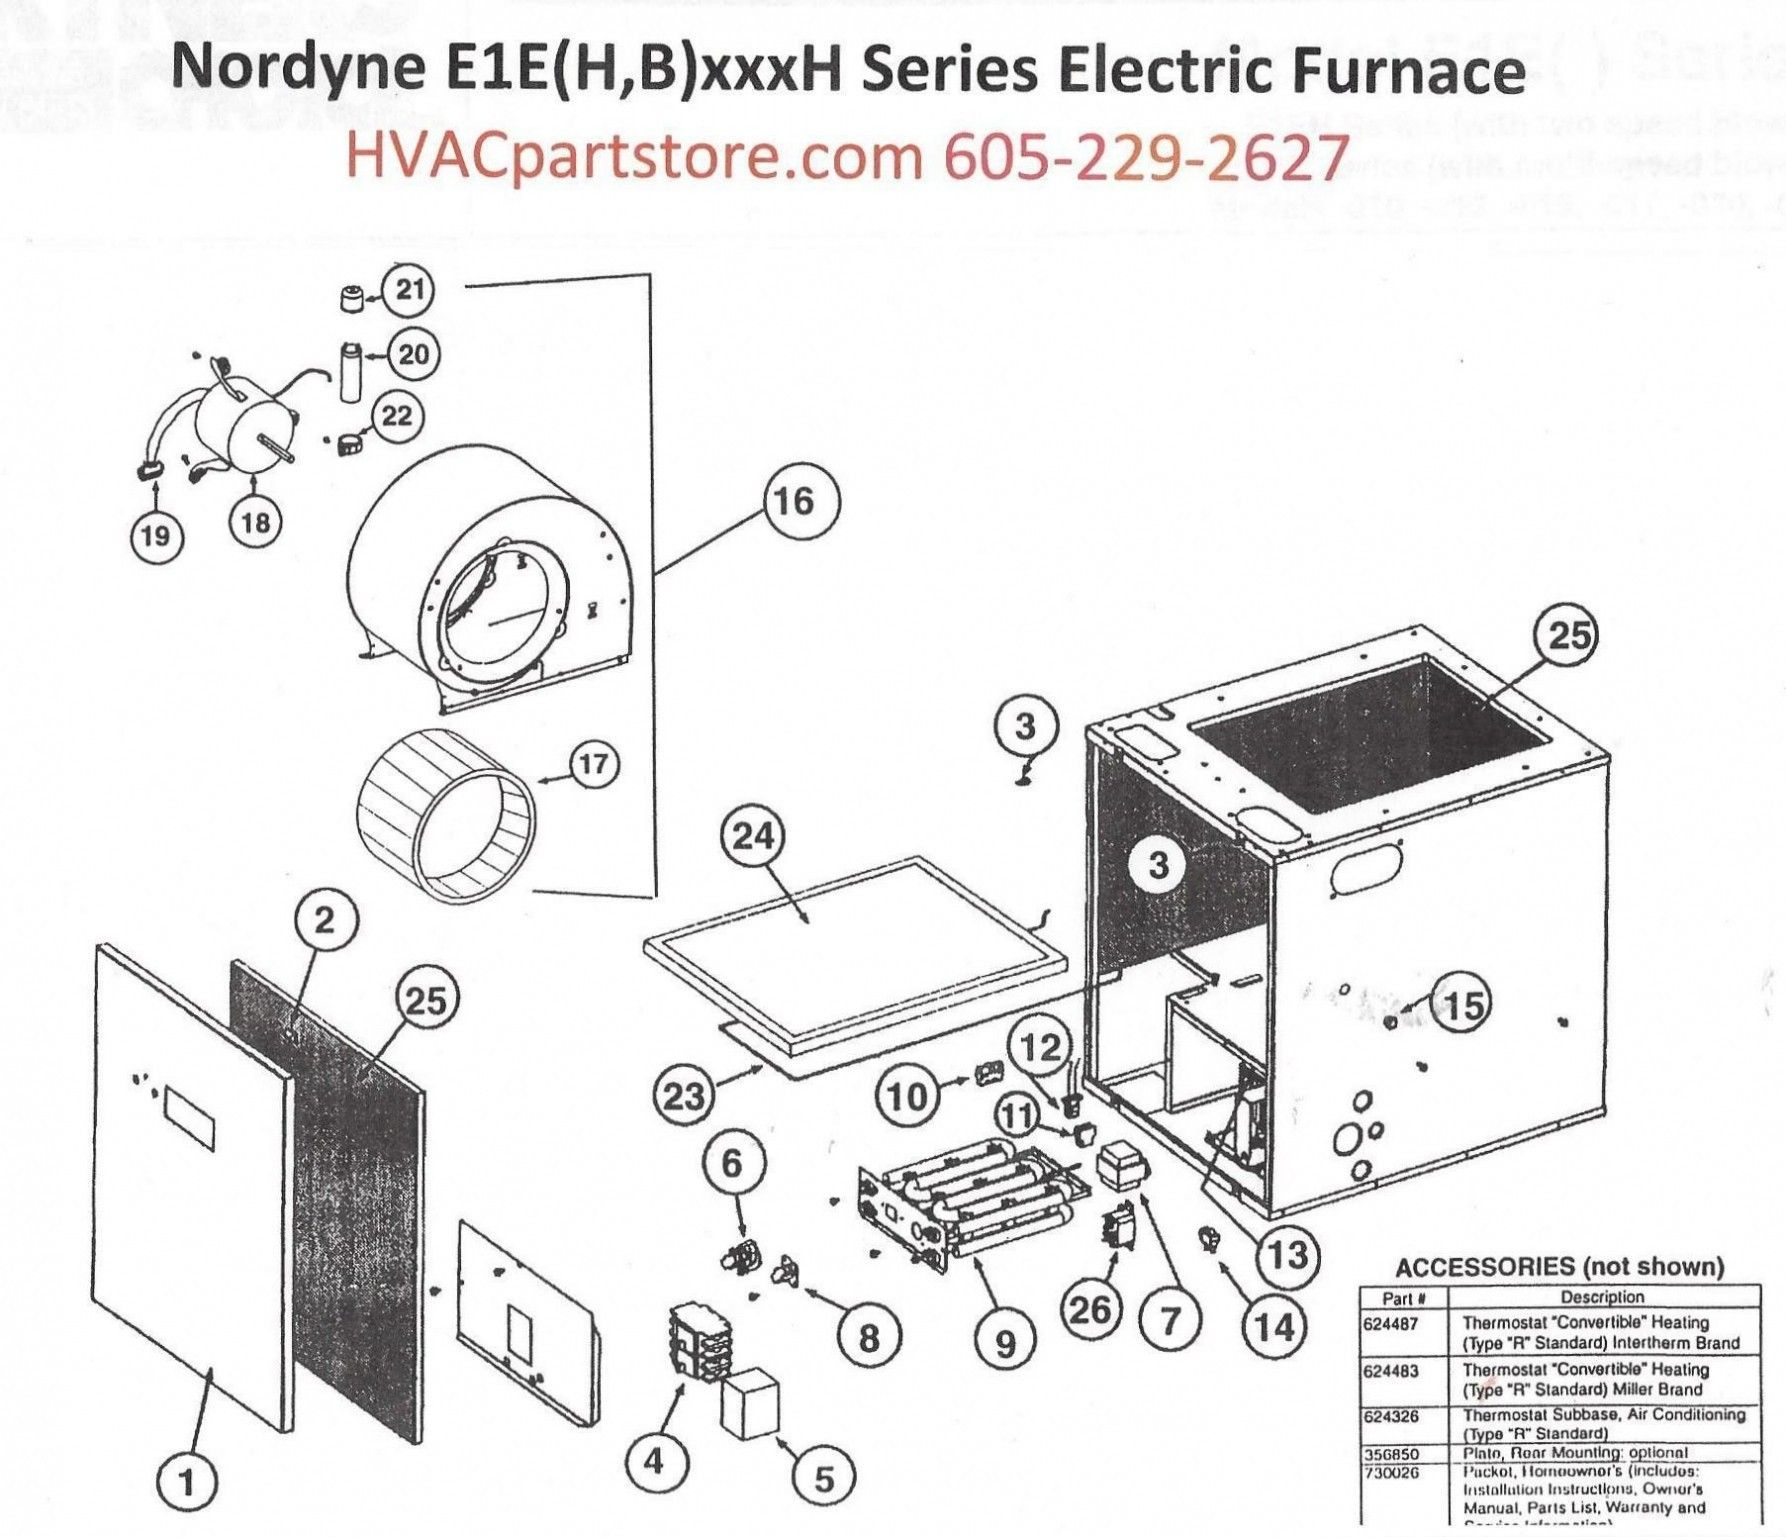 New Wiring Diagram For An Electric Furnace